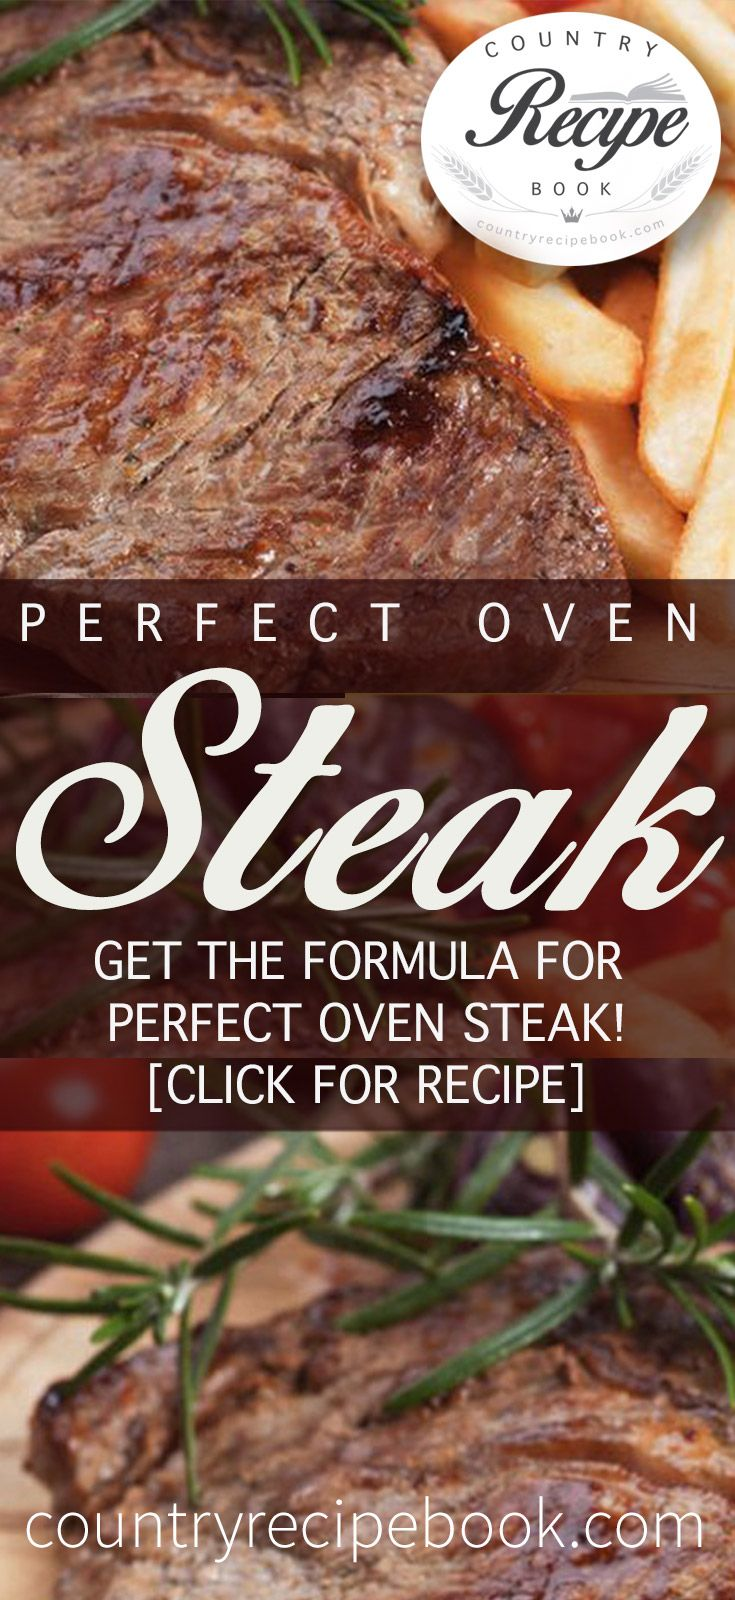 Making the perfect steak is an art worth learning. Use this oven steak recipe to help you make it perfect!